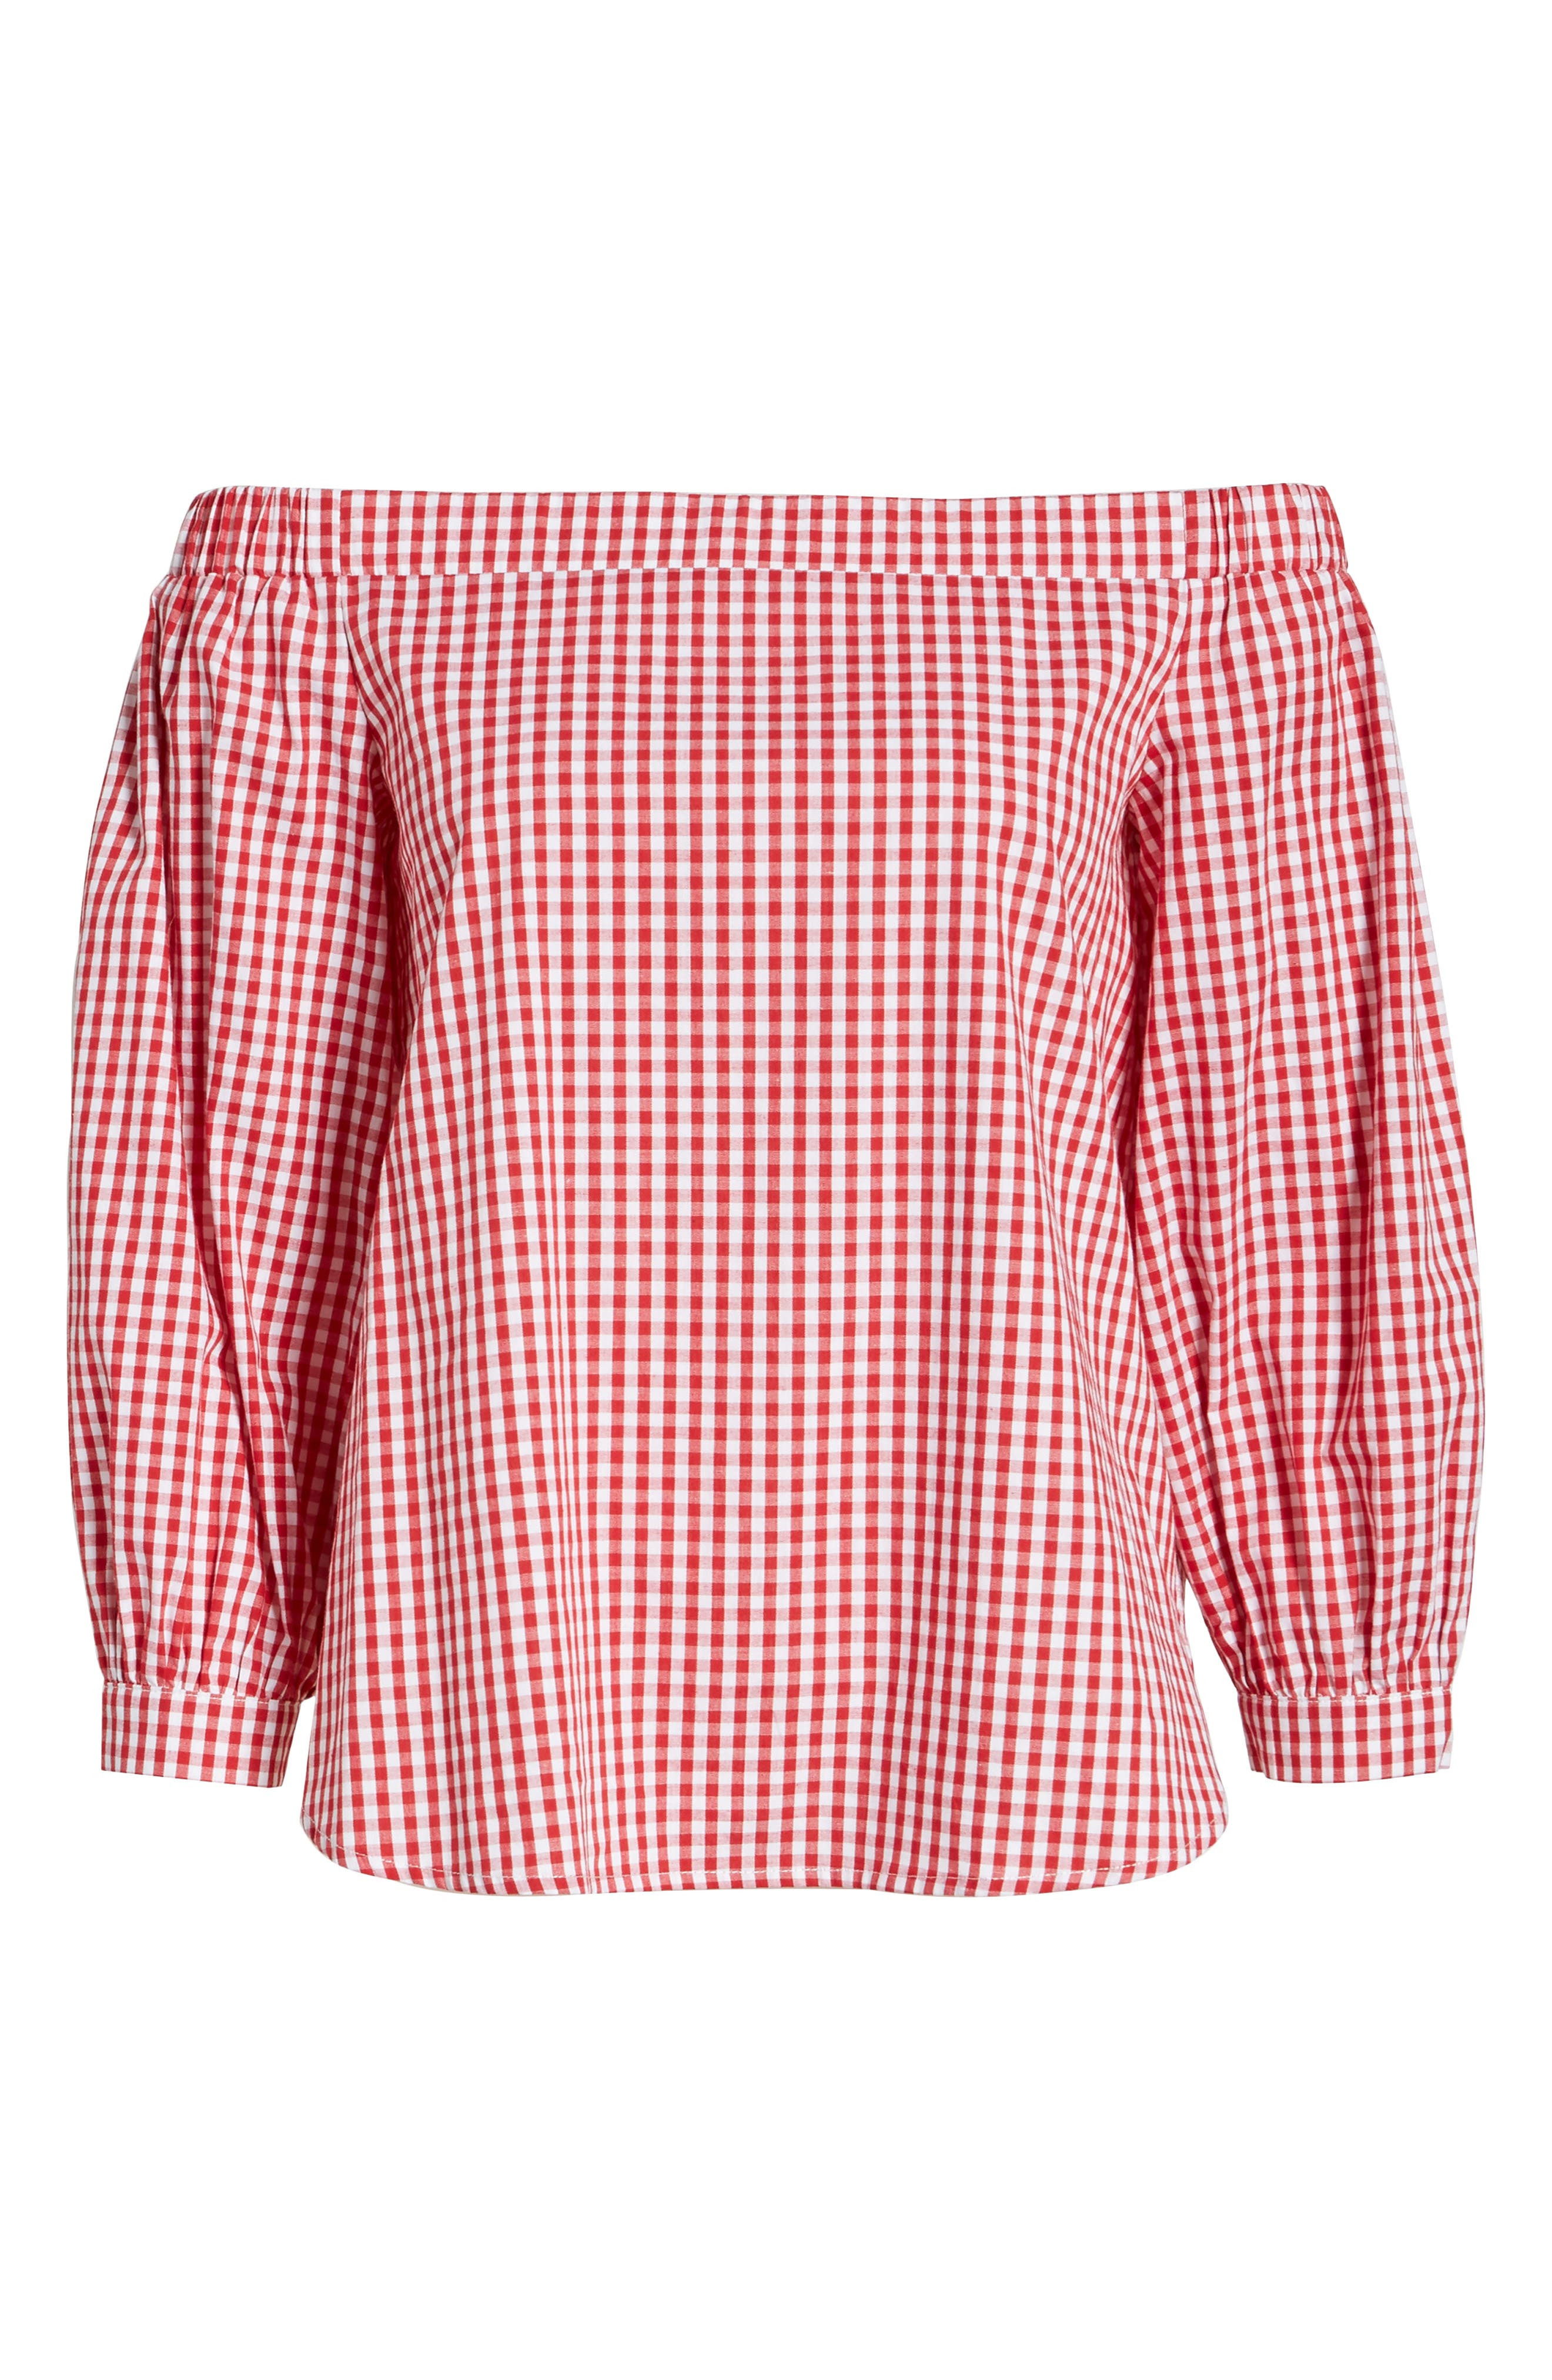 SOPRANO,                             Gingham Off the Shoulder Bubble Sleeve Top,                             Alternate thumbnail 6, color,                             600